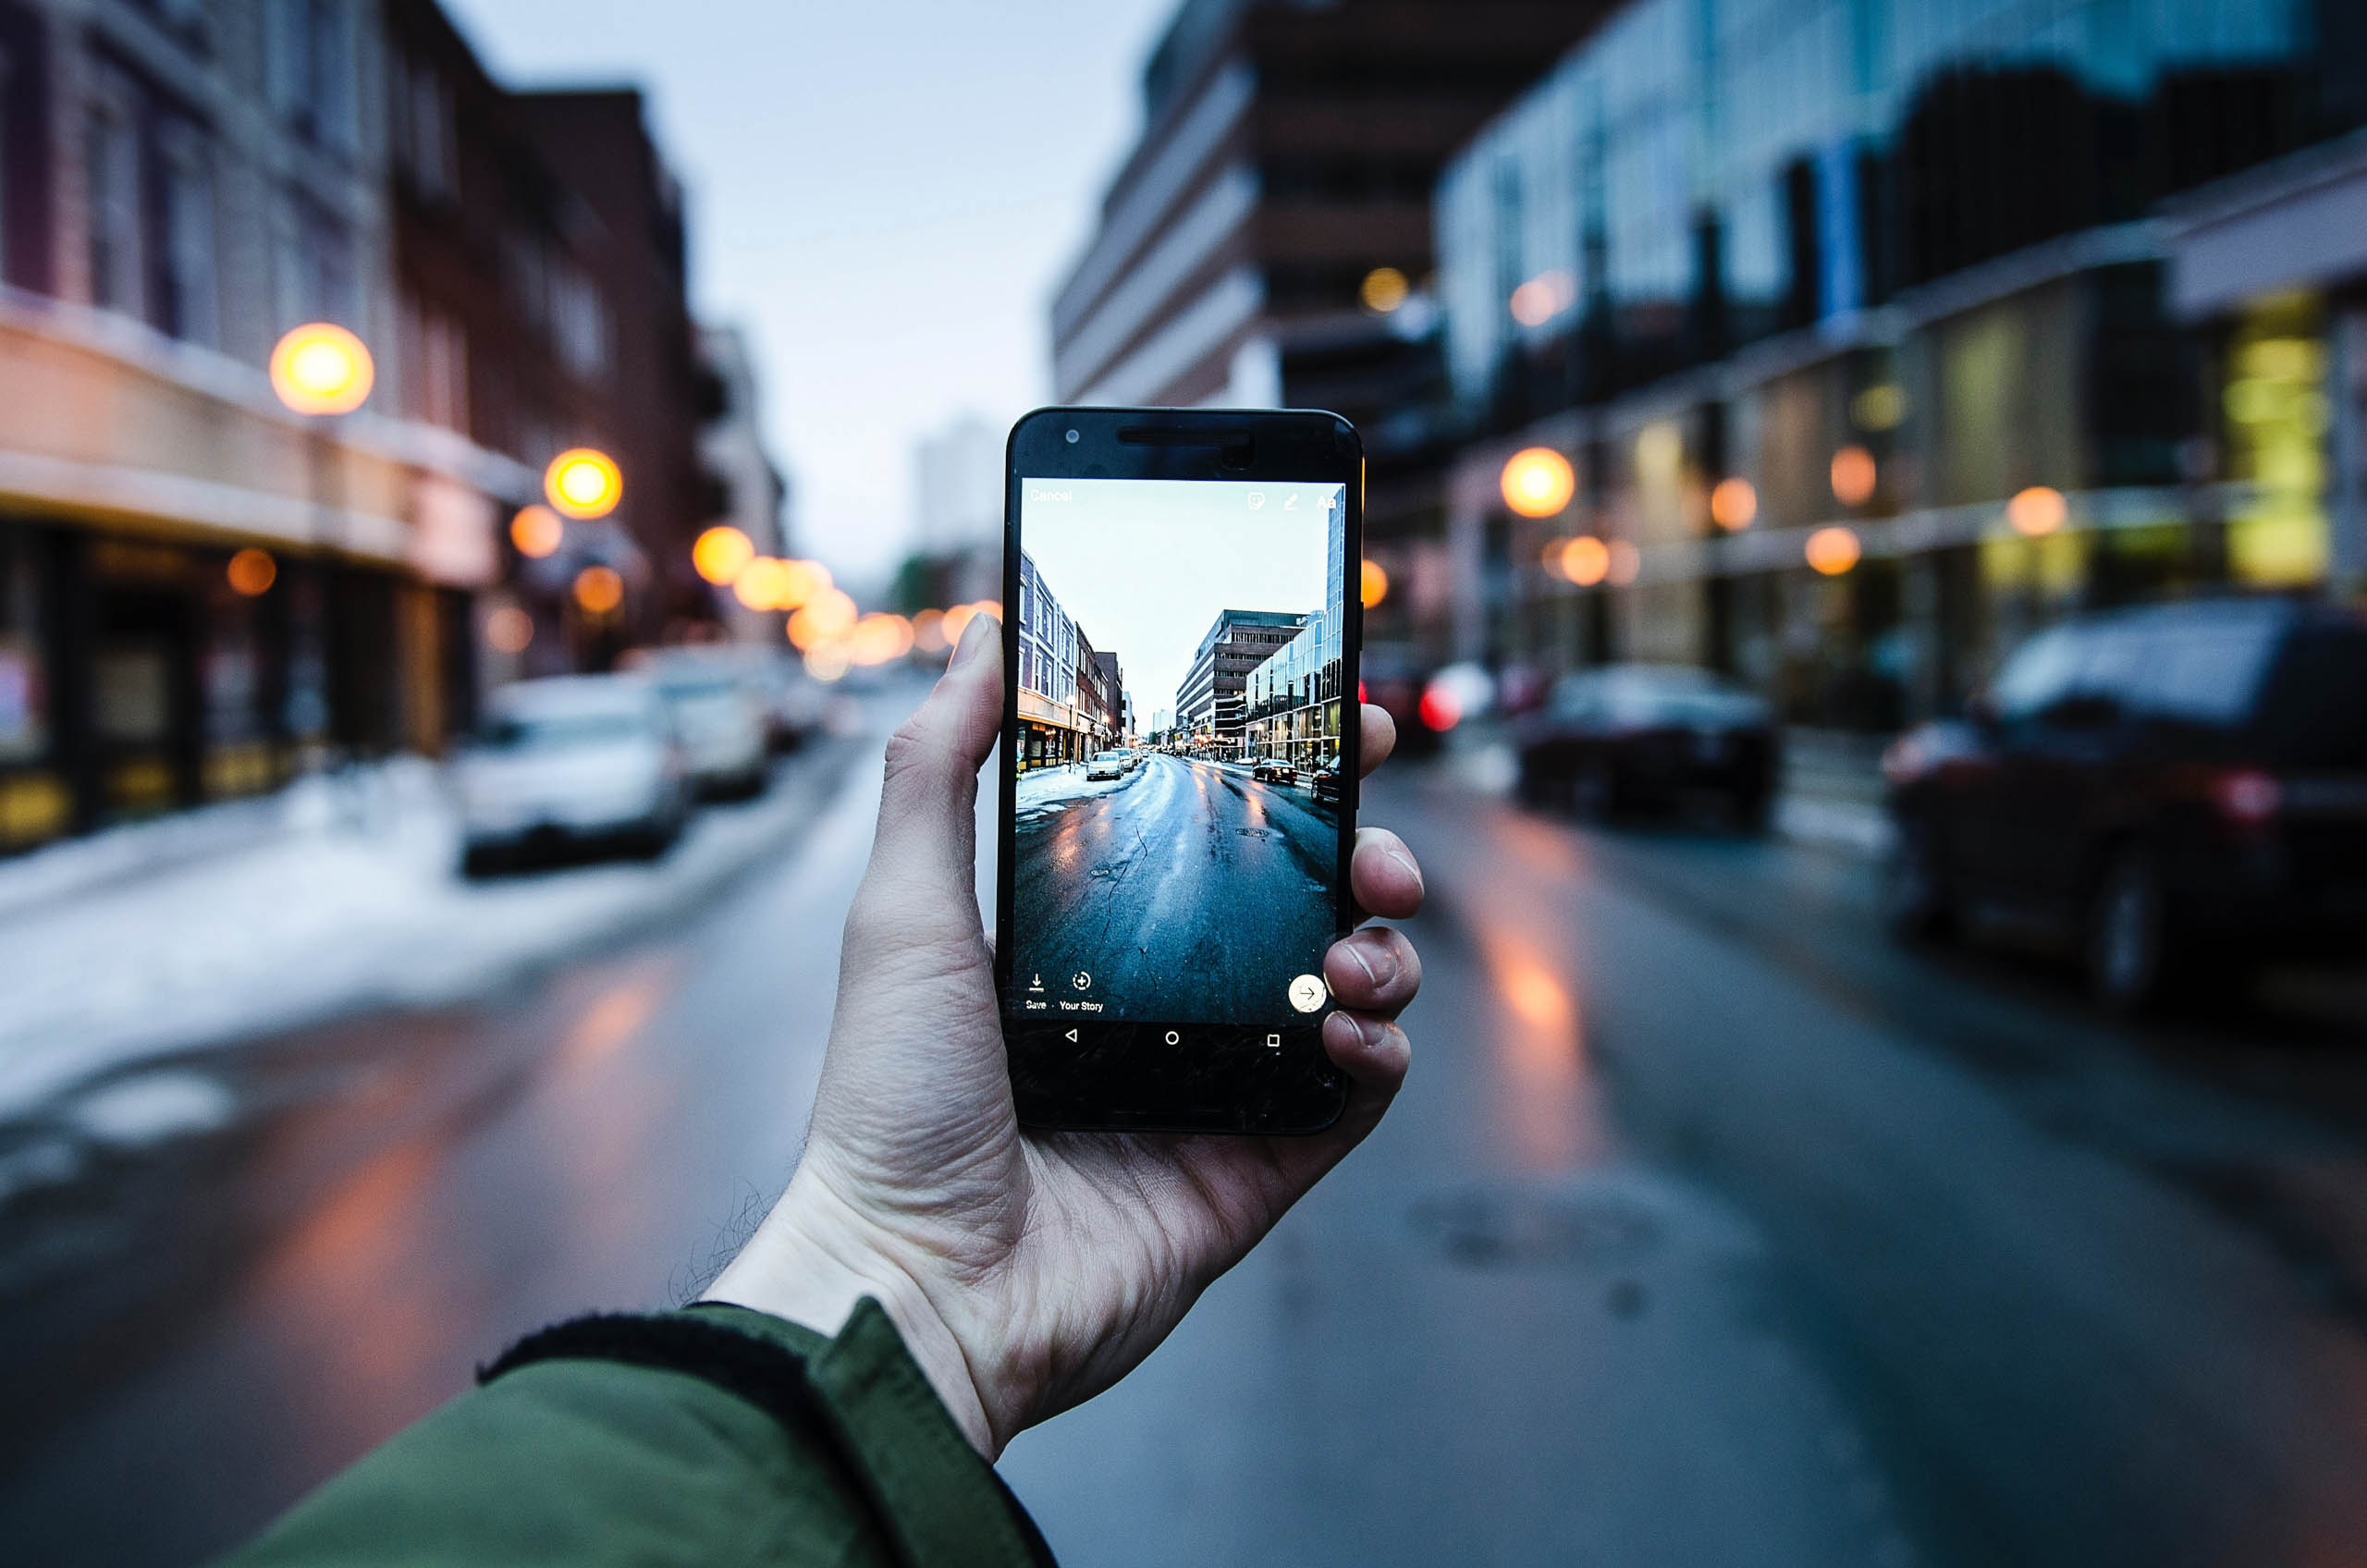 Man holding a phone, with a view of a street through the phone